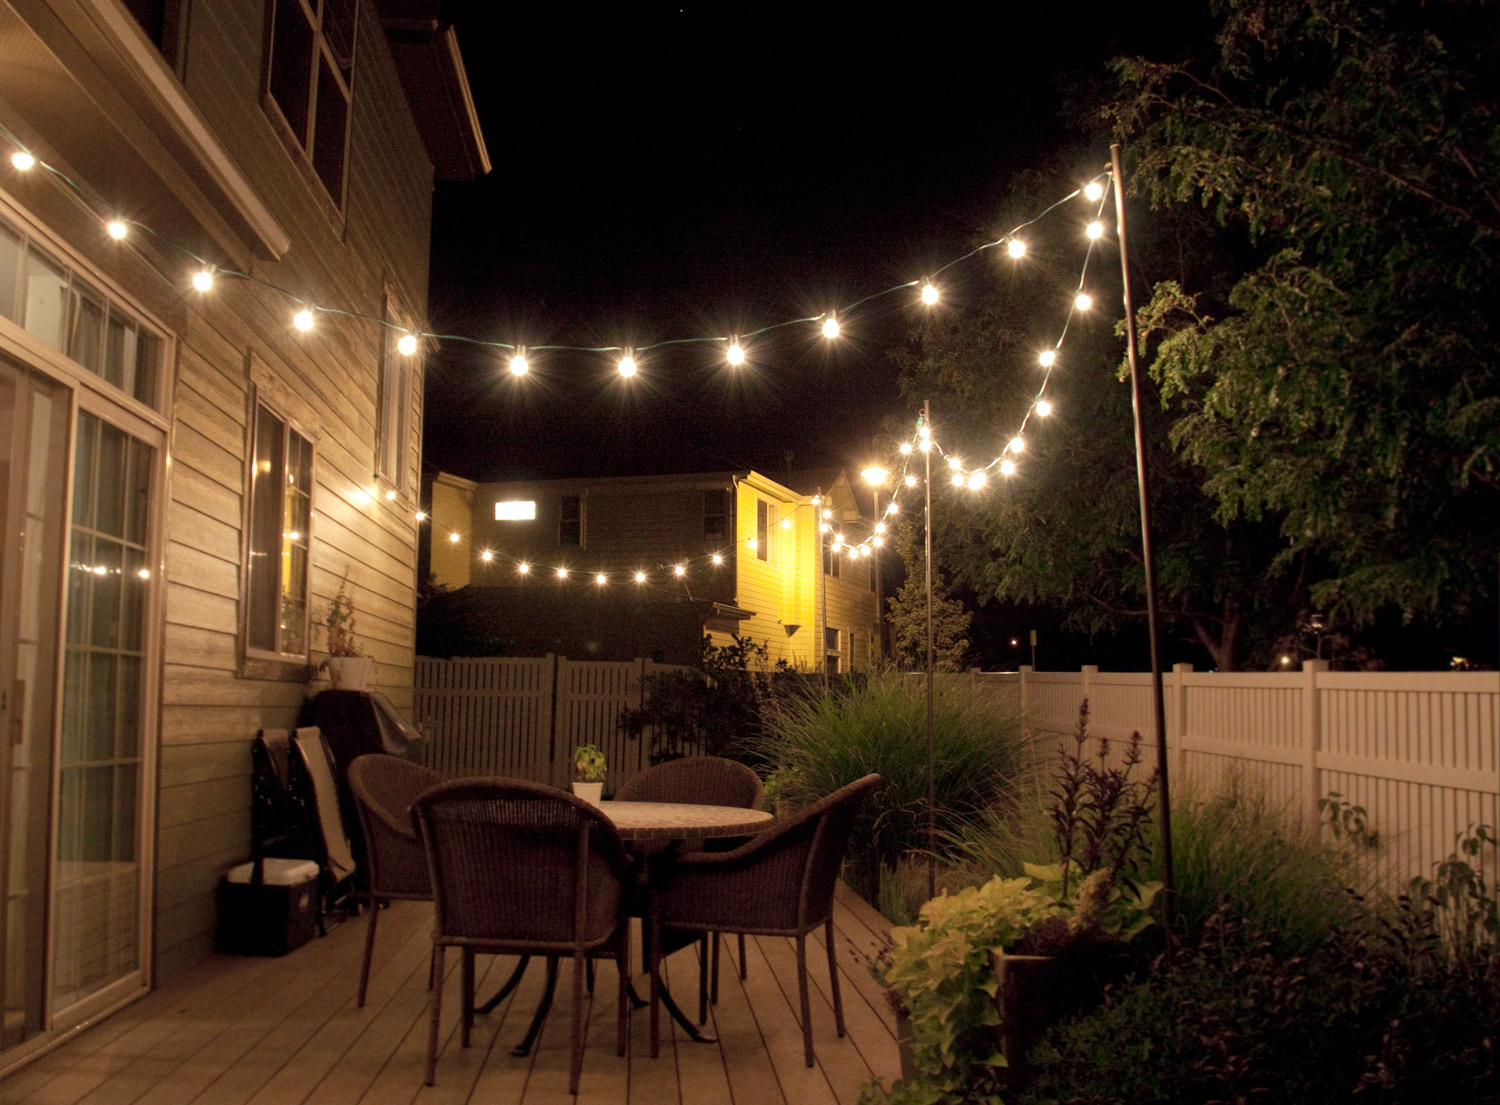 diy outdoor string lights - Ideas For Outdoor Patio Lighting